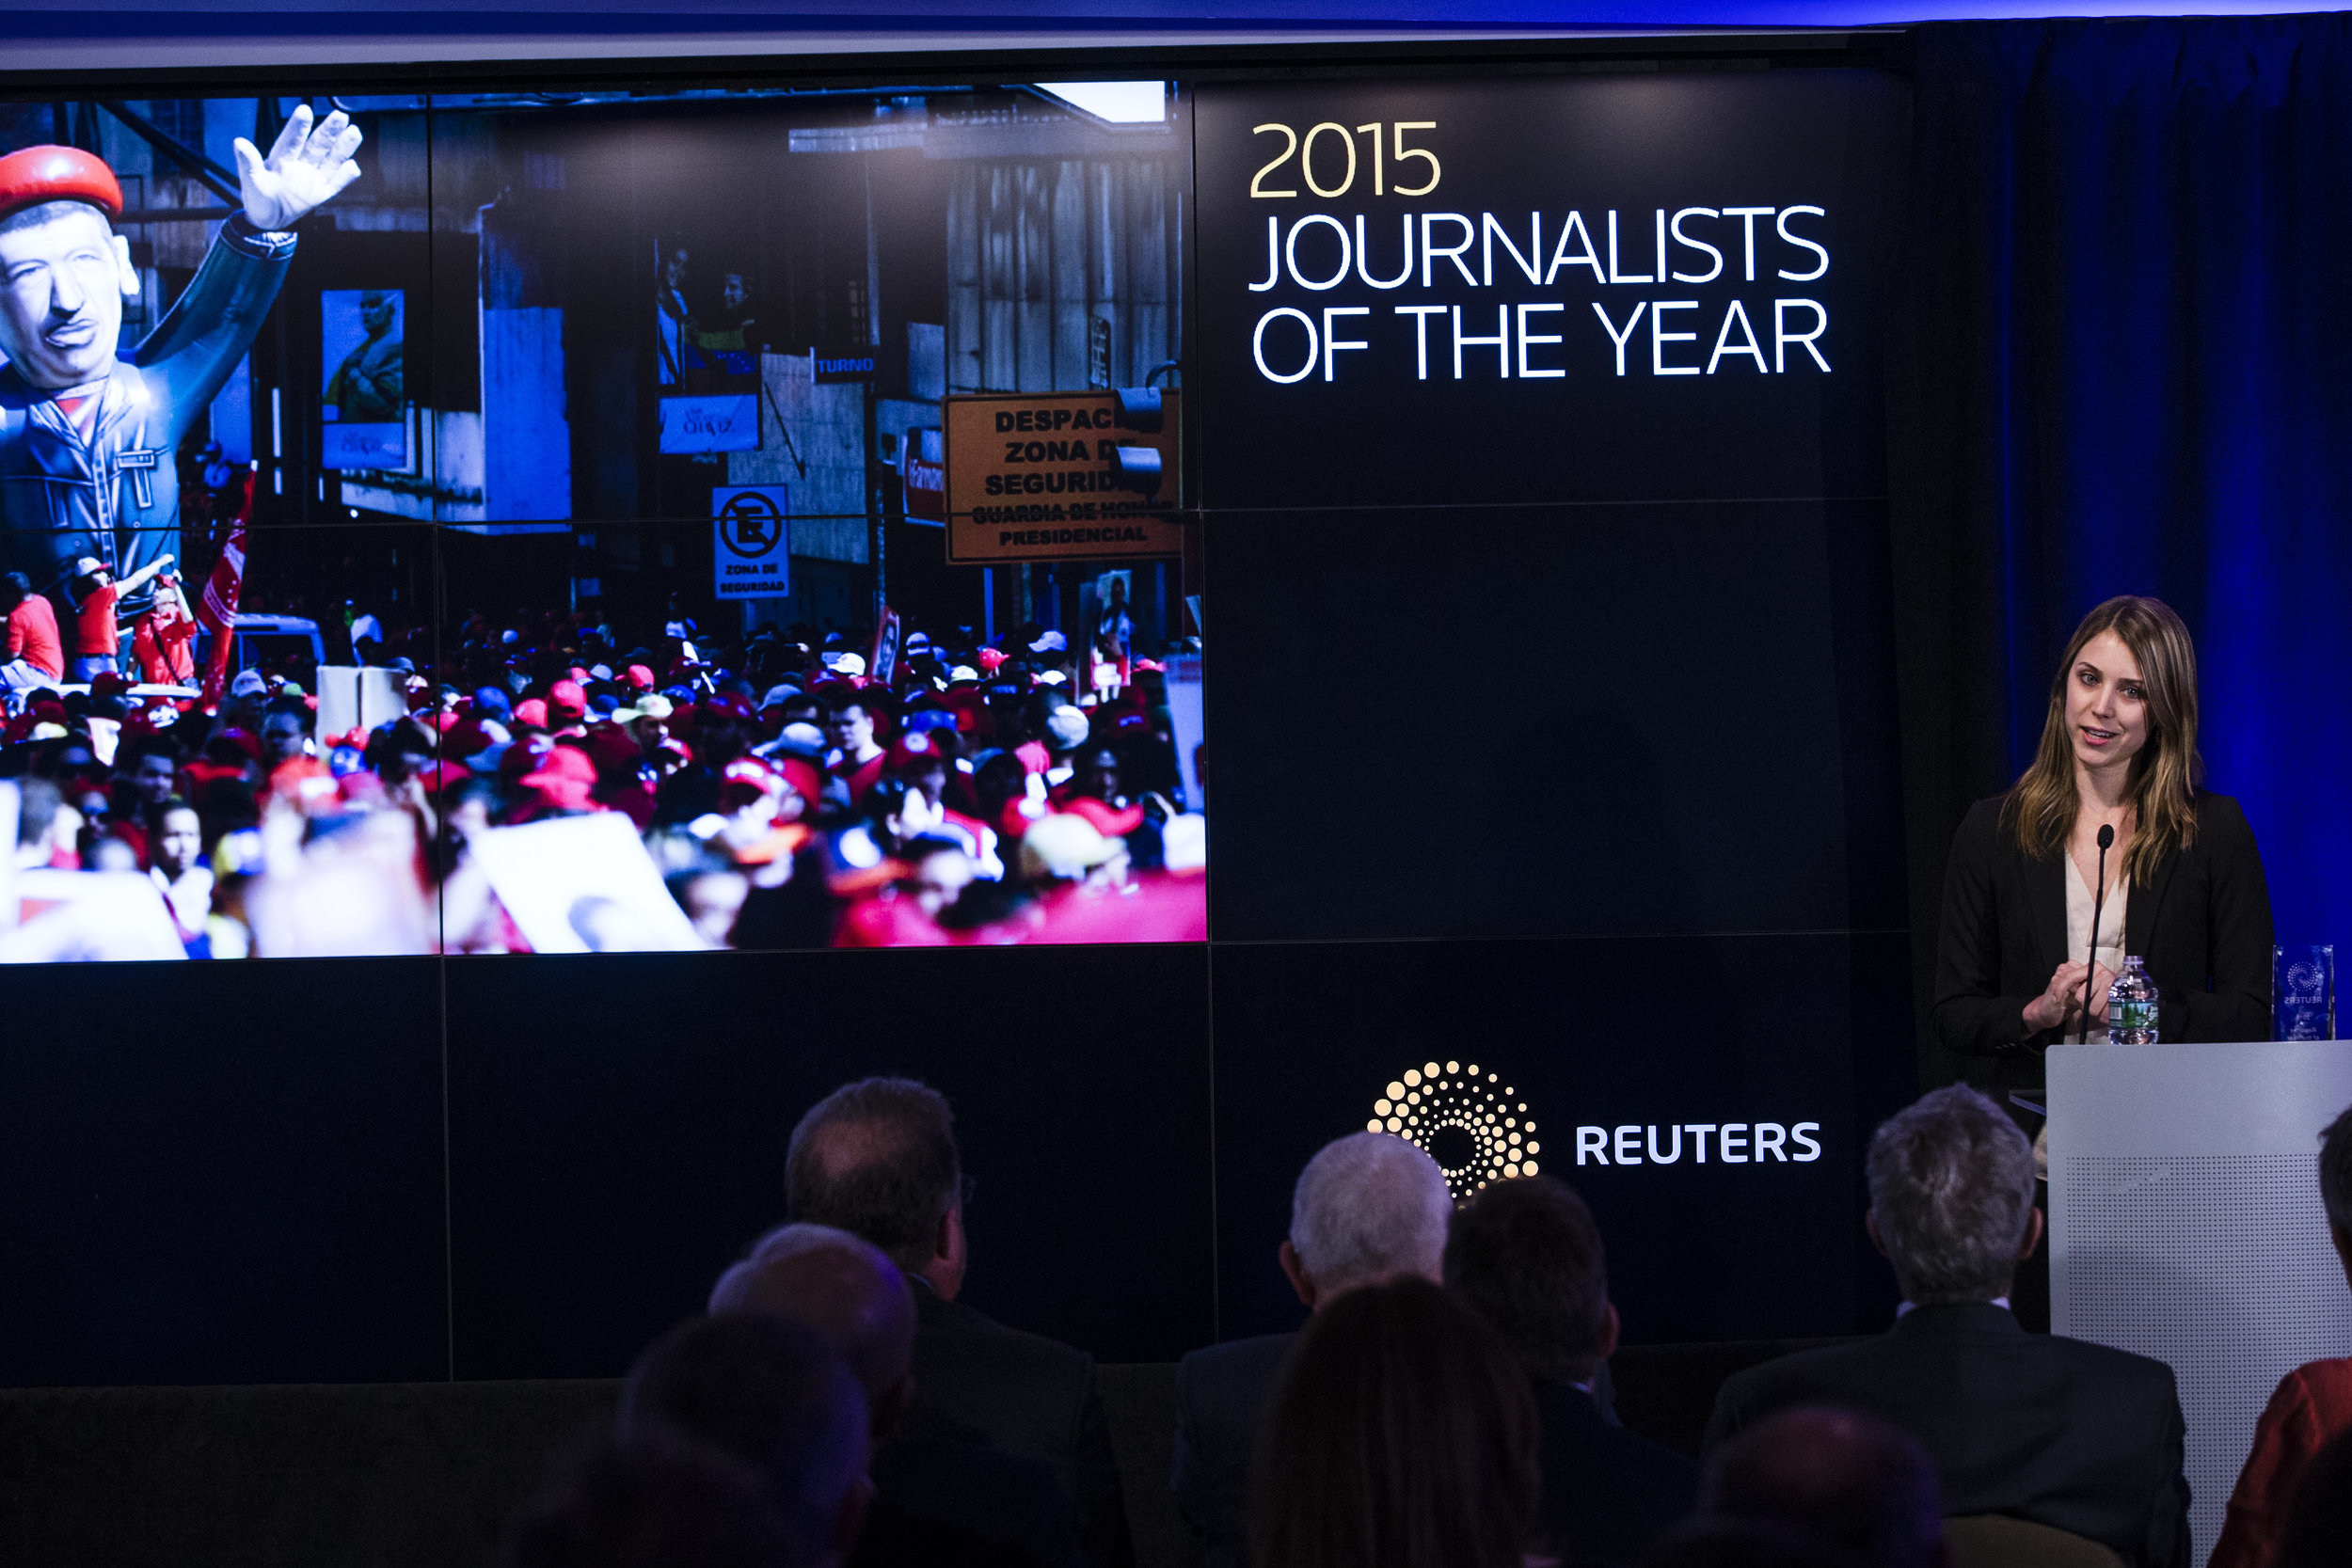 Reuters awards in New York, March 2016.